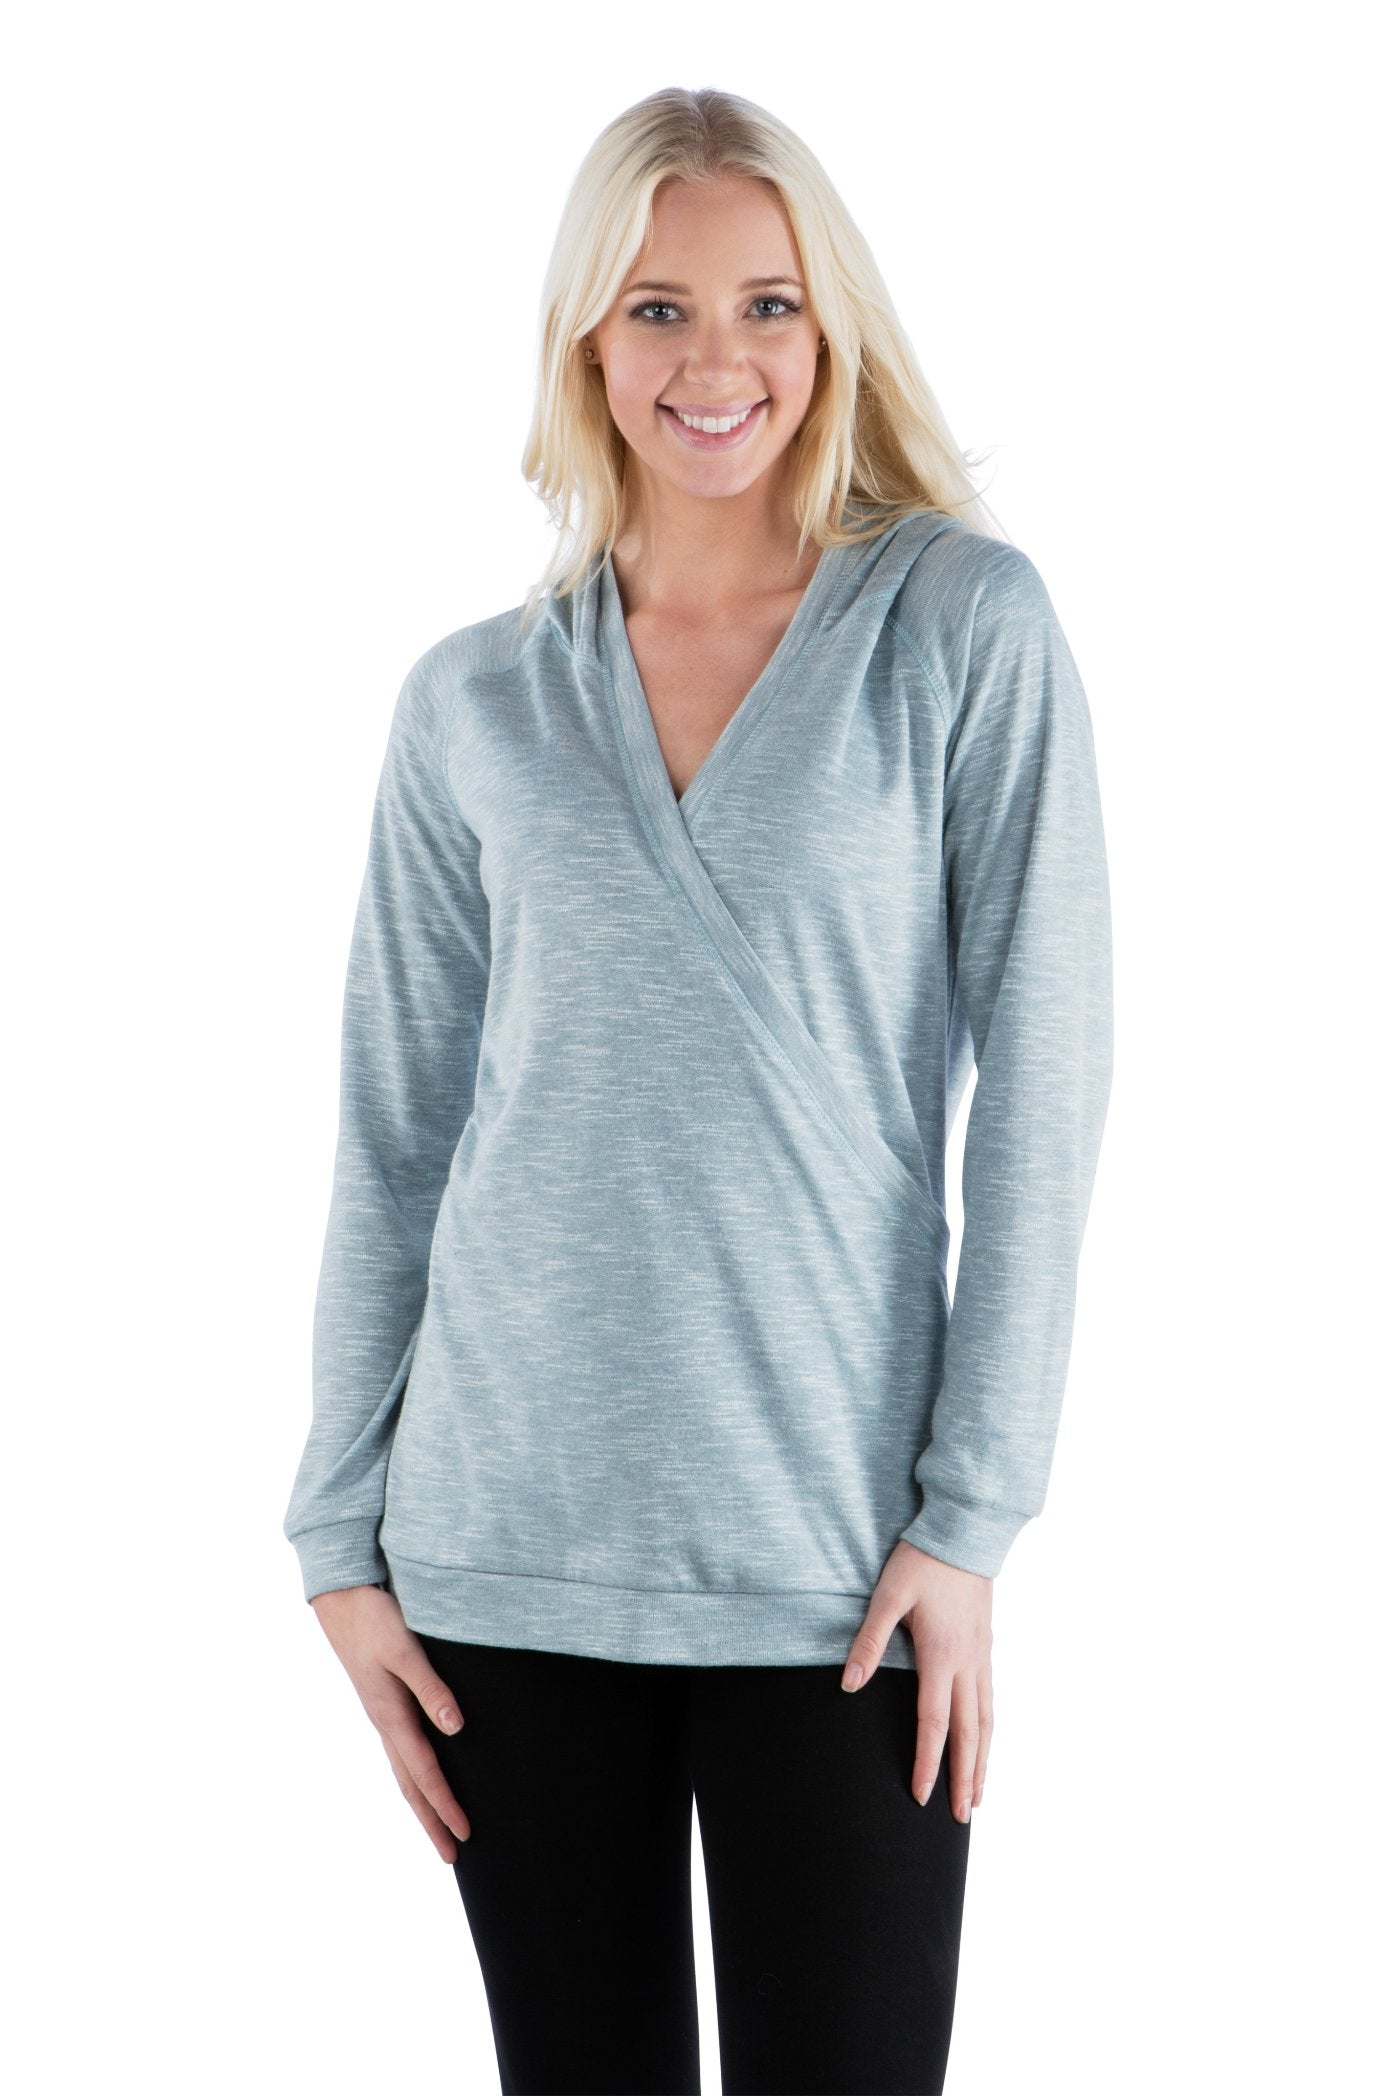 Cross Over Wrap Hoodie with Long Sleeves - Light Teal Top, Blue Top